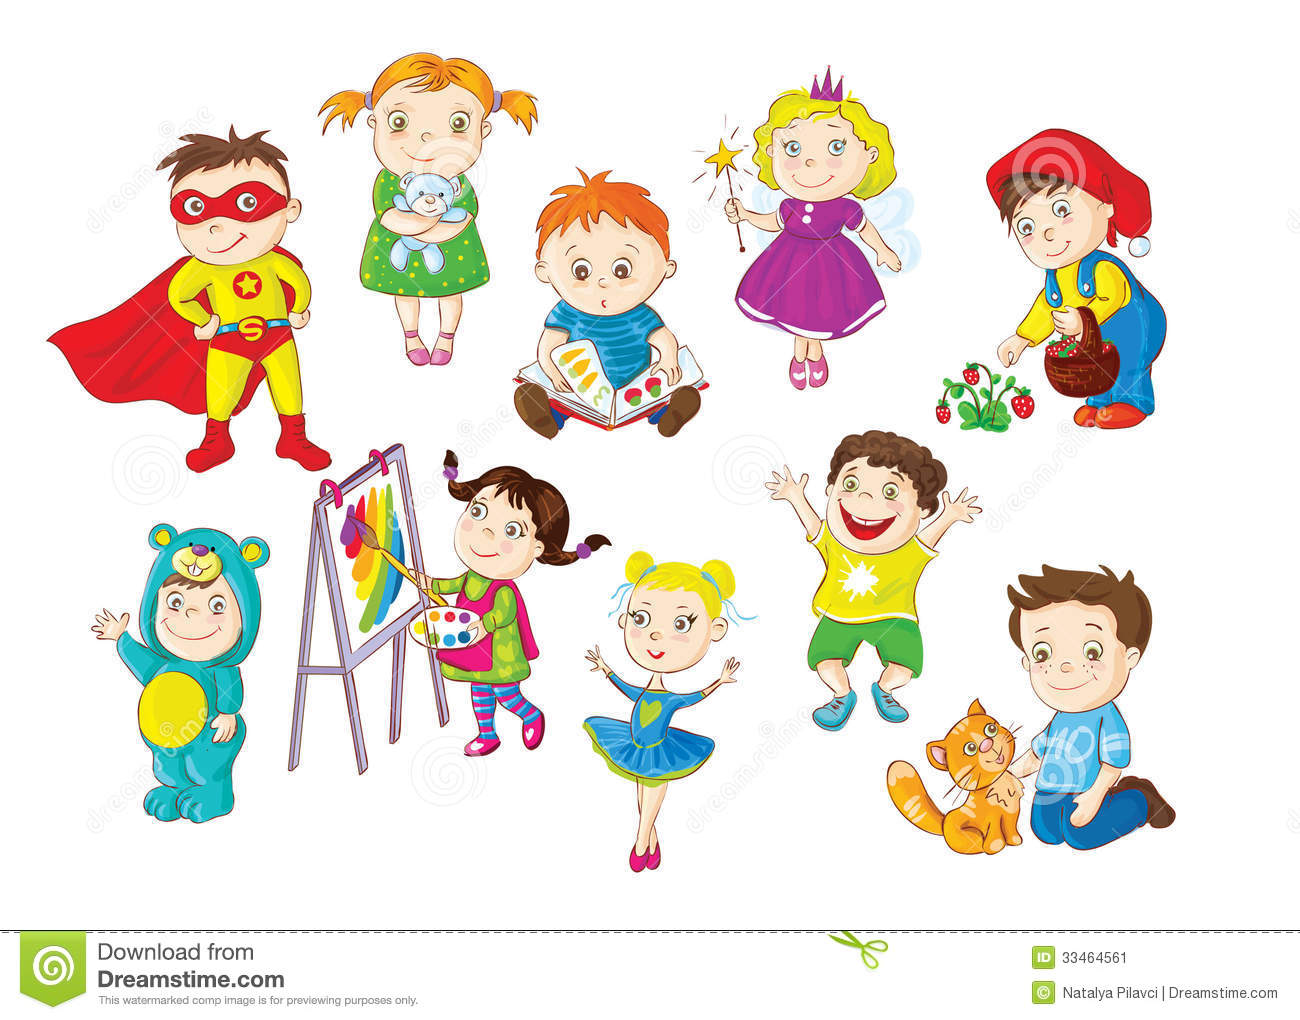 Toddlers Activities Stock Image - Image: 33464561